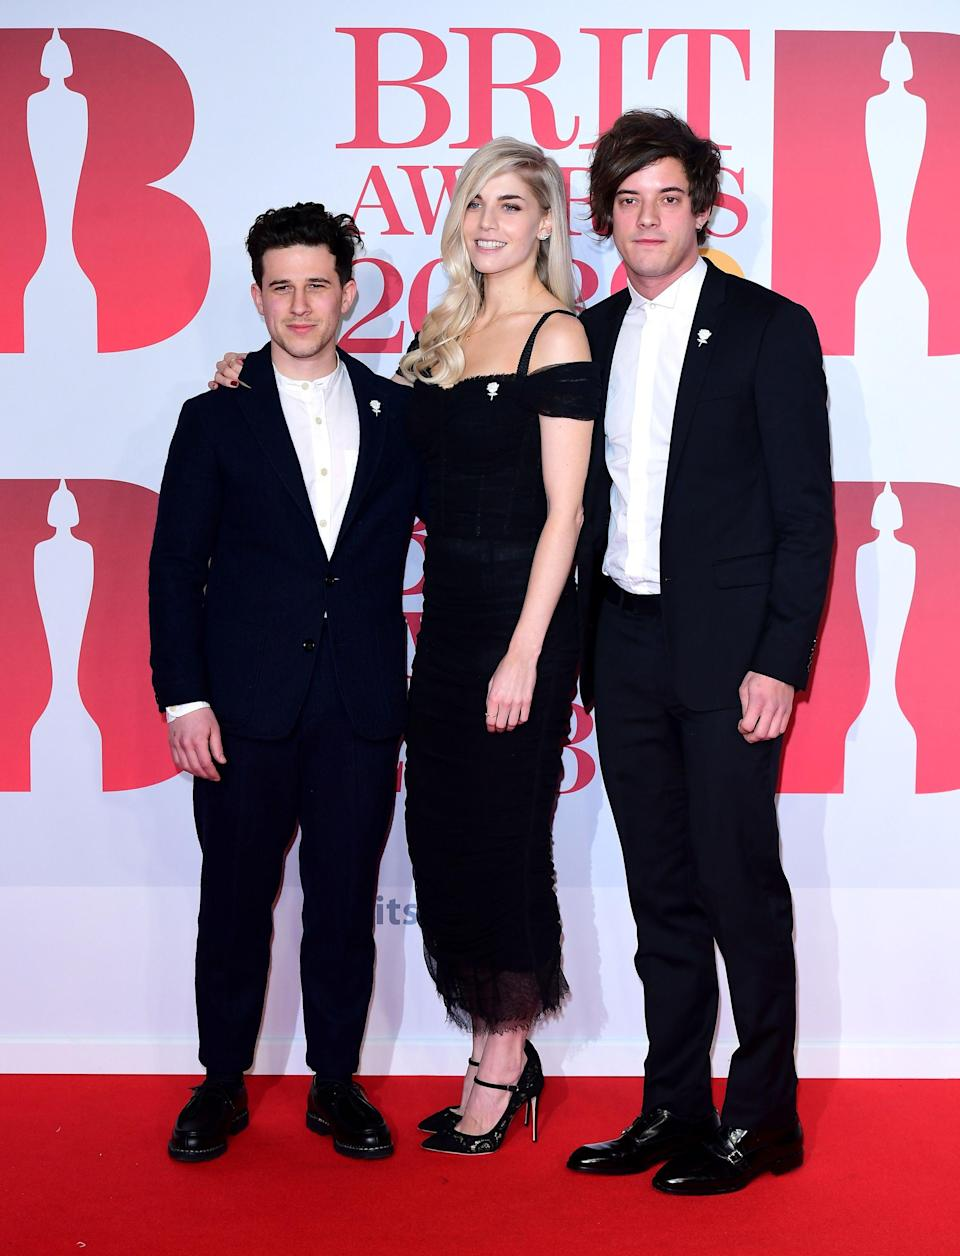 <p>London Grammar's Hannah Reid, Dan Rothman and Dominic 'Dot' Major attending the Brit Awards at the O2 Arena</p> (PA)